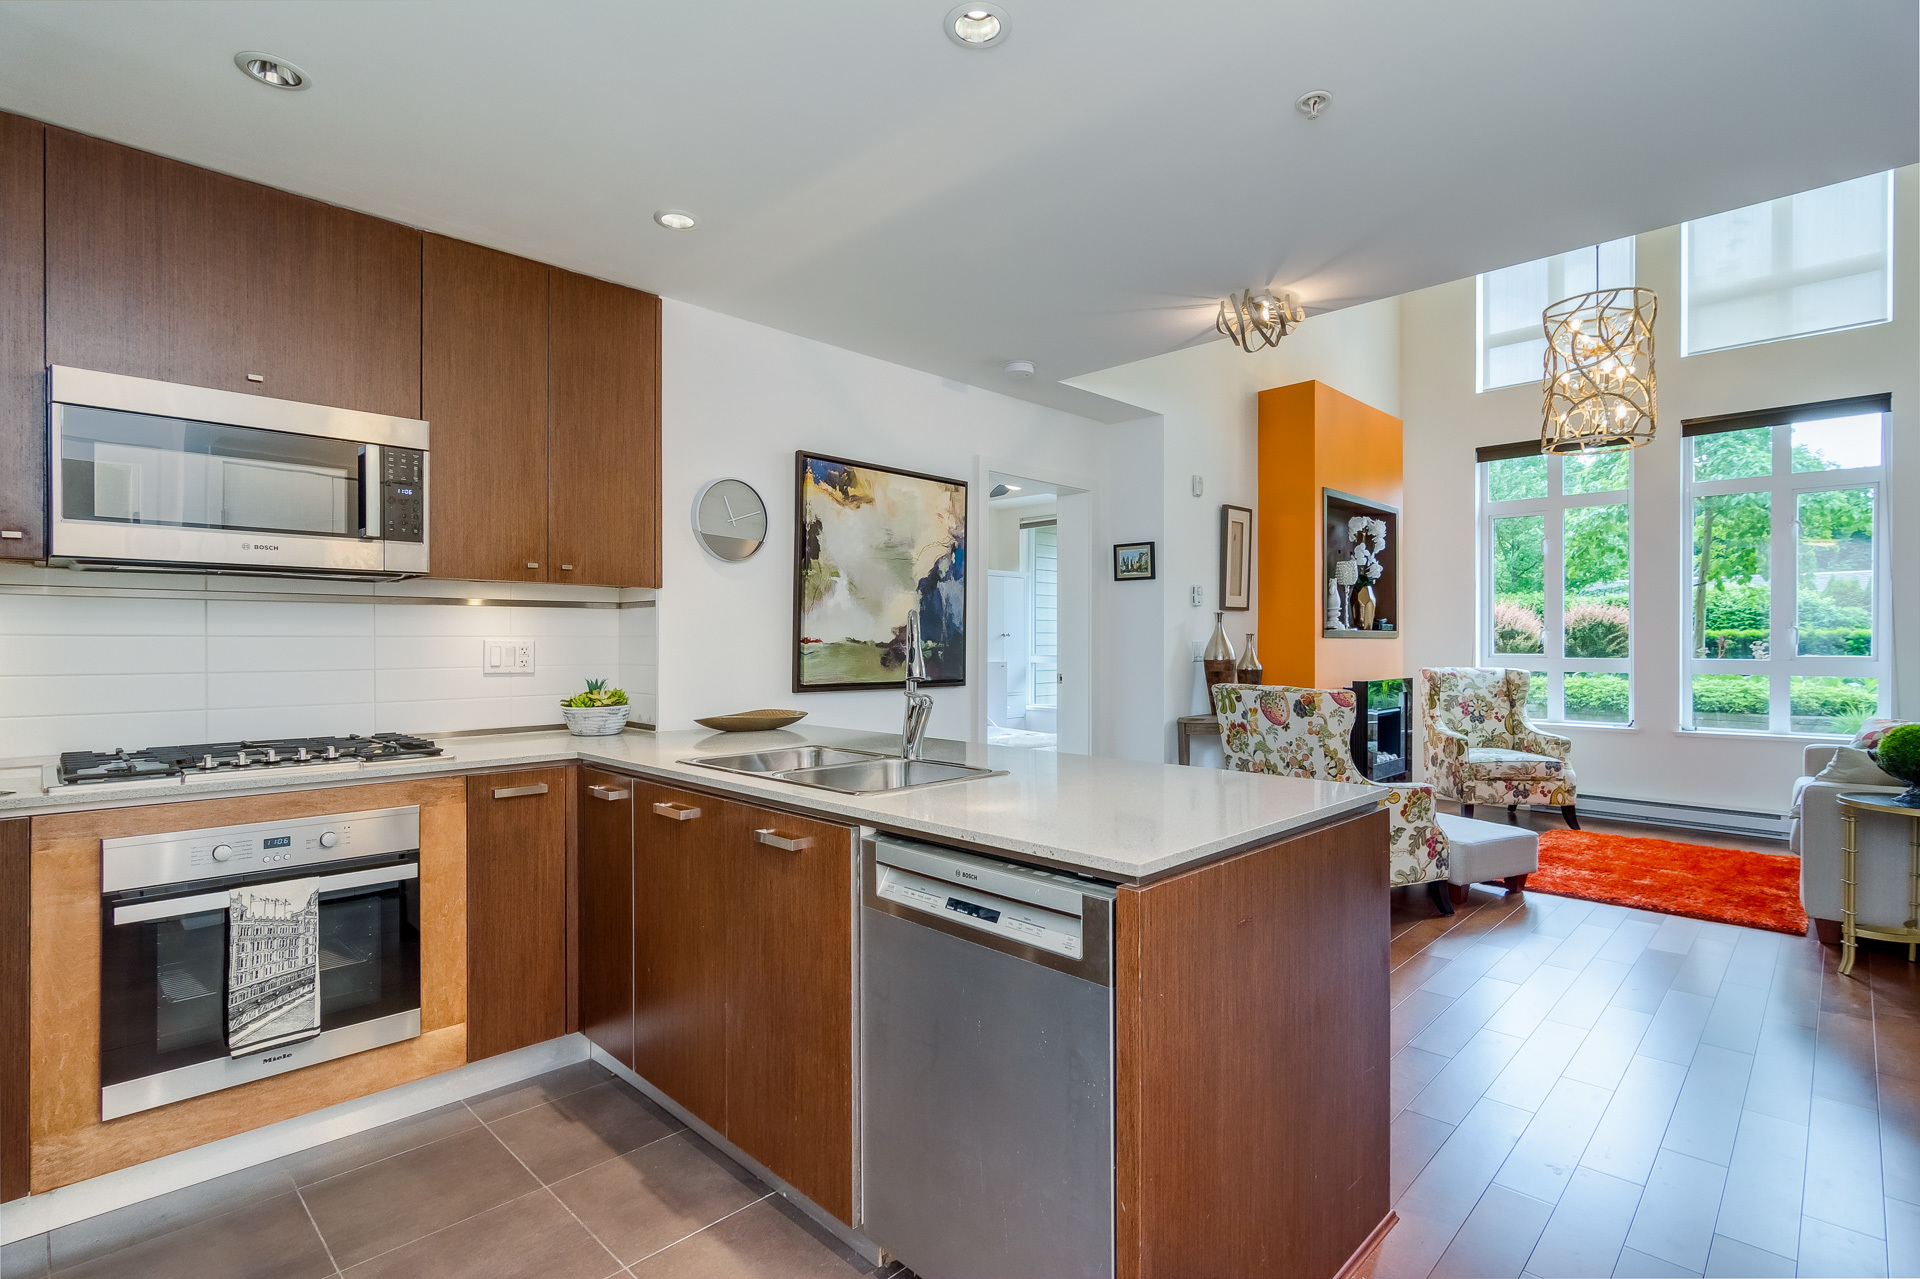 Kitchen & Living Room at 151 - 2950 King George Boulevard, King George Corridor, South Surrey White Rock